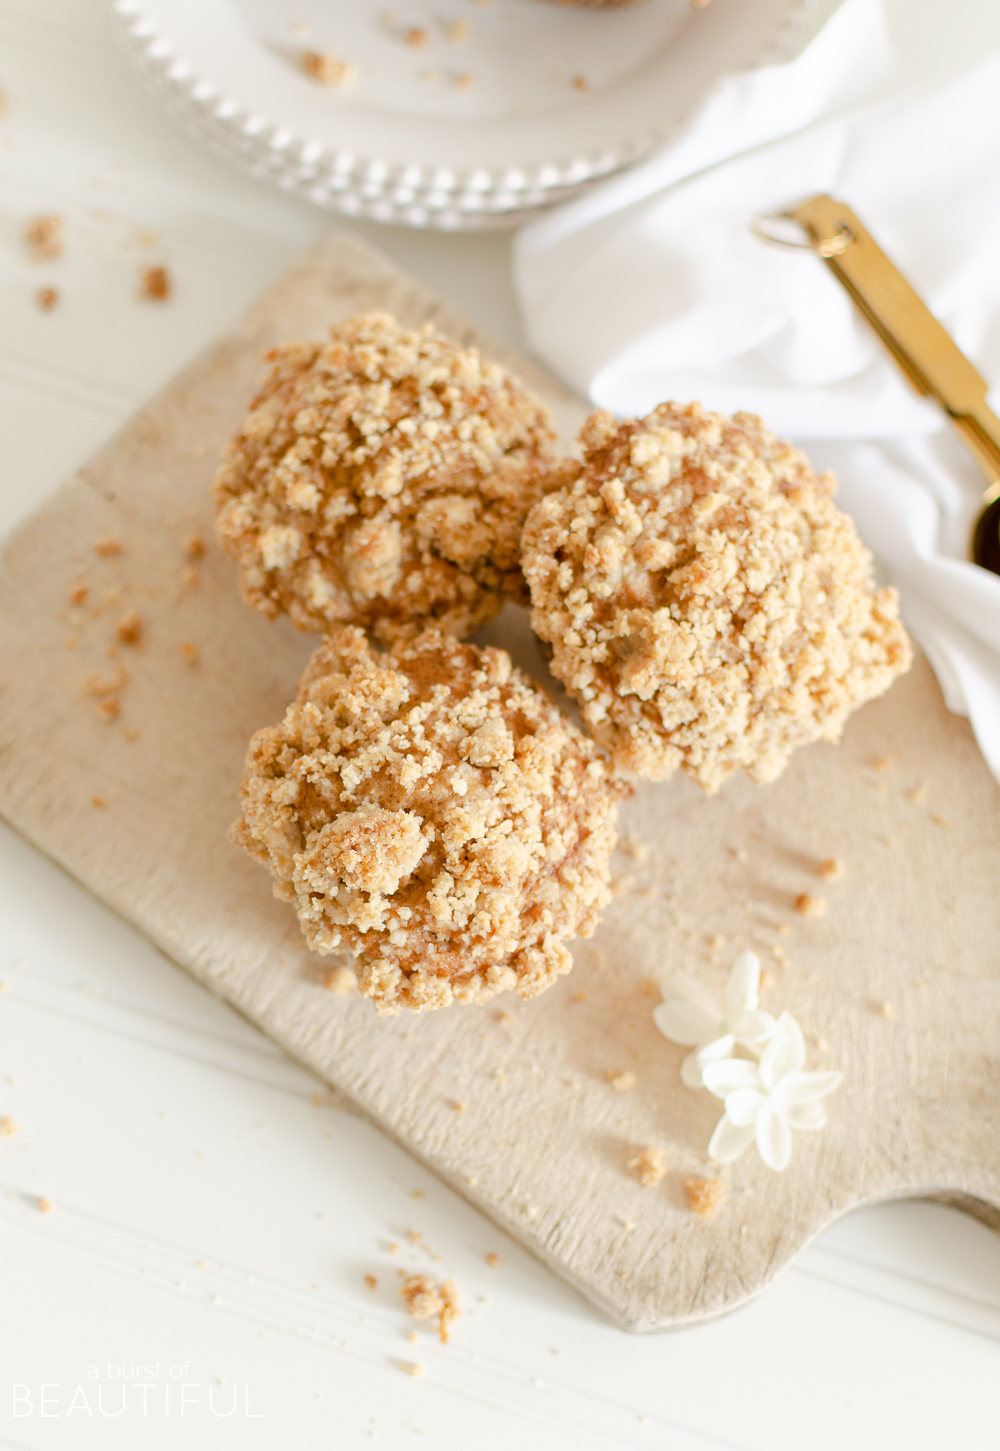 Make the most of the fall harvest with these easy homemade apple crumble muffins baked with fresh apples and topped with a brown sugar crumble.